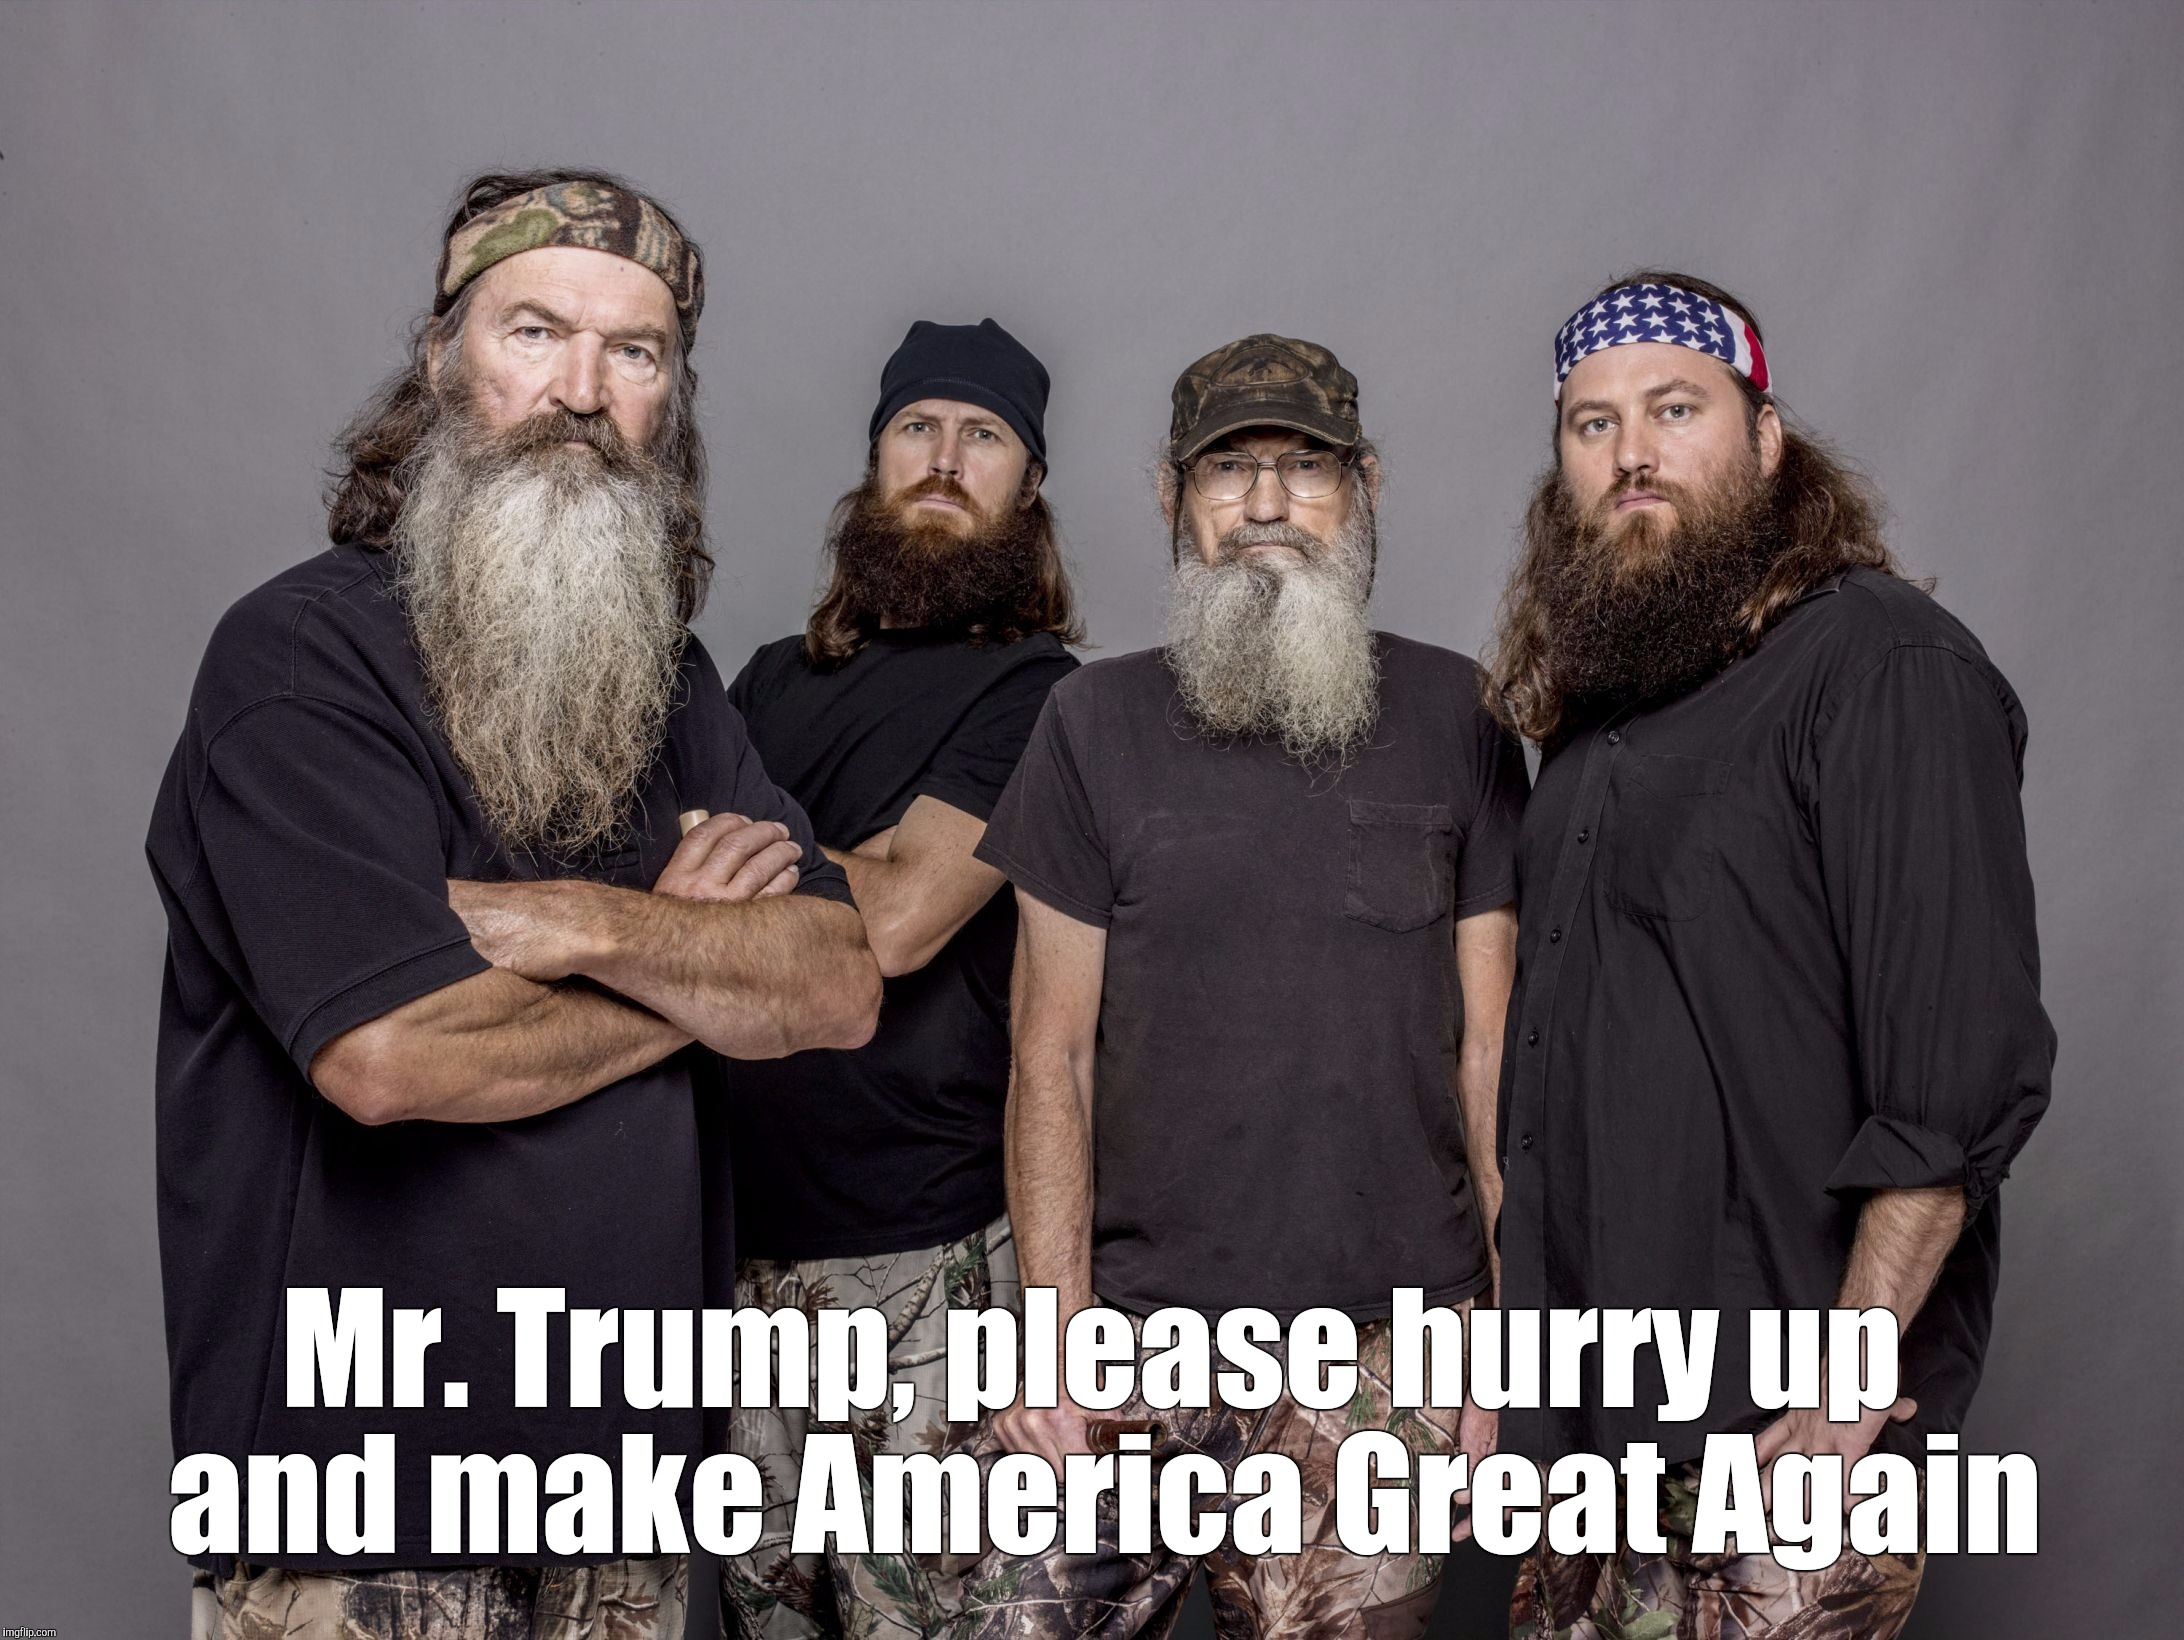 Memes, Duck Dynasty | Mr. Trump, please hurry up and make America Great Again | image tagged in memes,duck dynasty | made w/ Imgflip meme maker